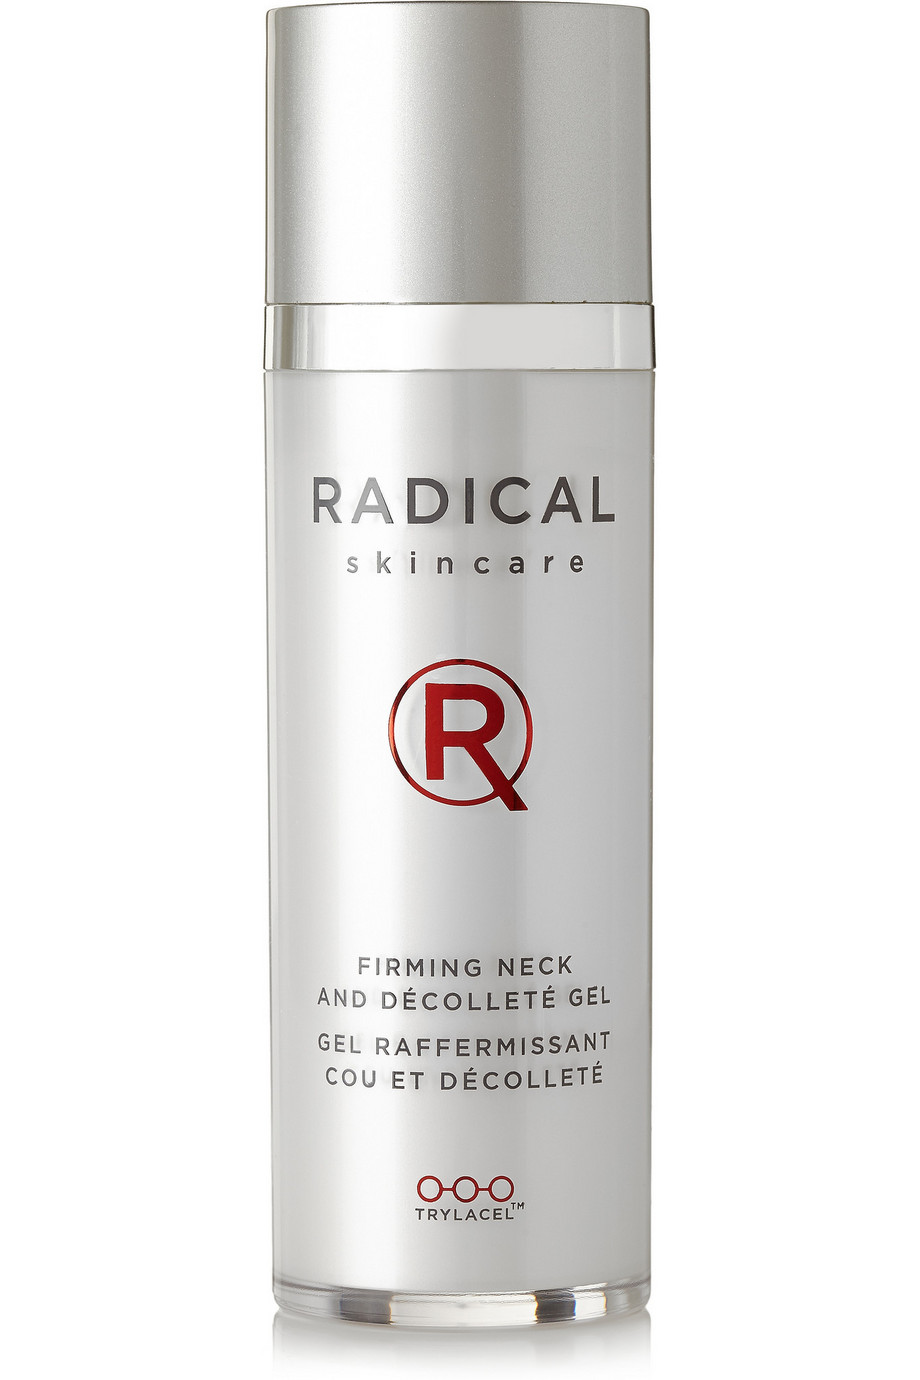 Firming Neck and Décolleté Gel, 30ml, by Radical Skincare